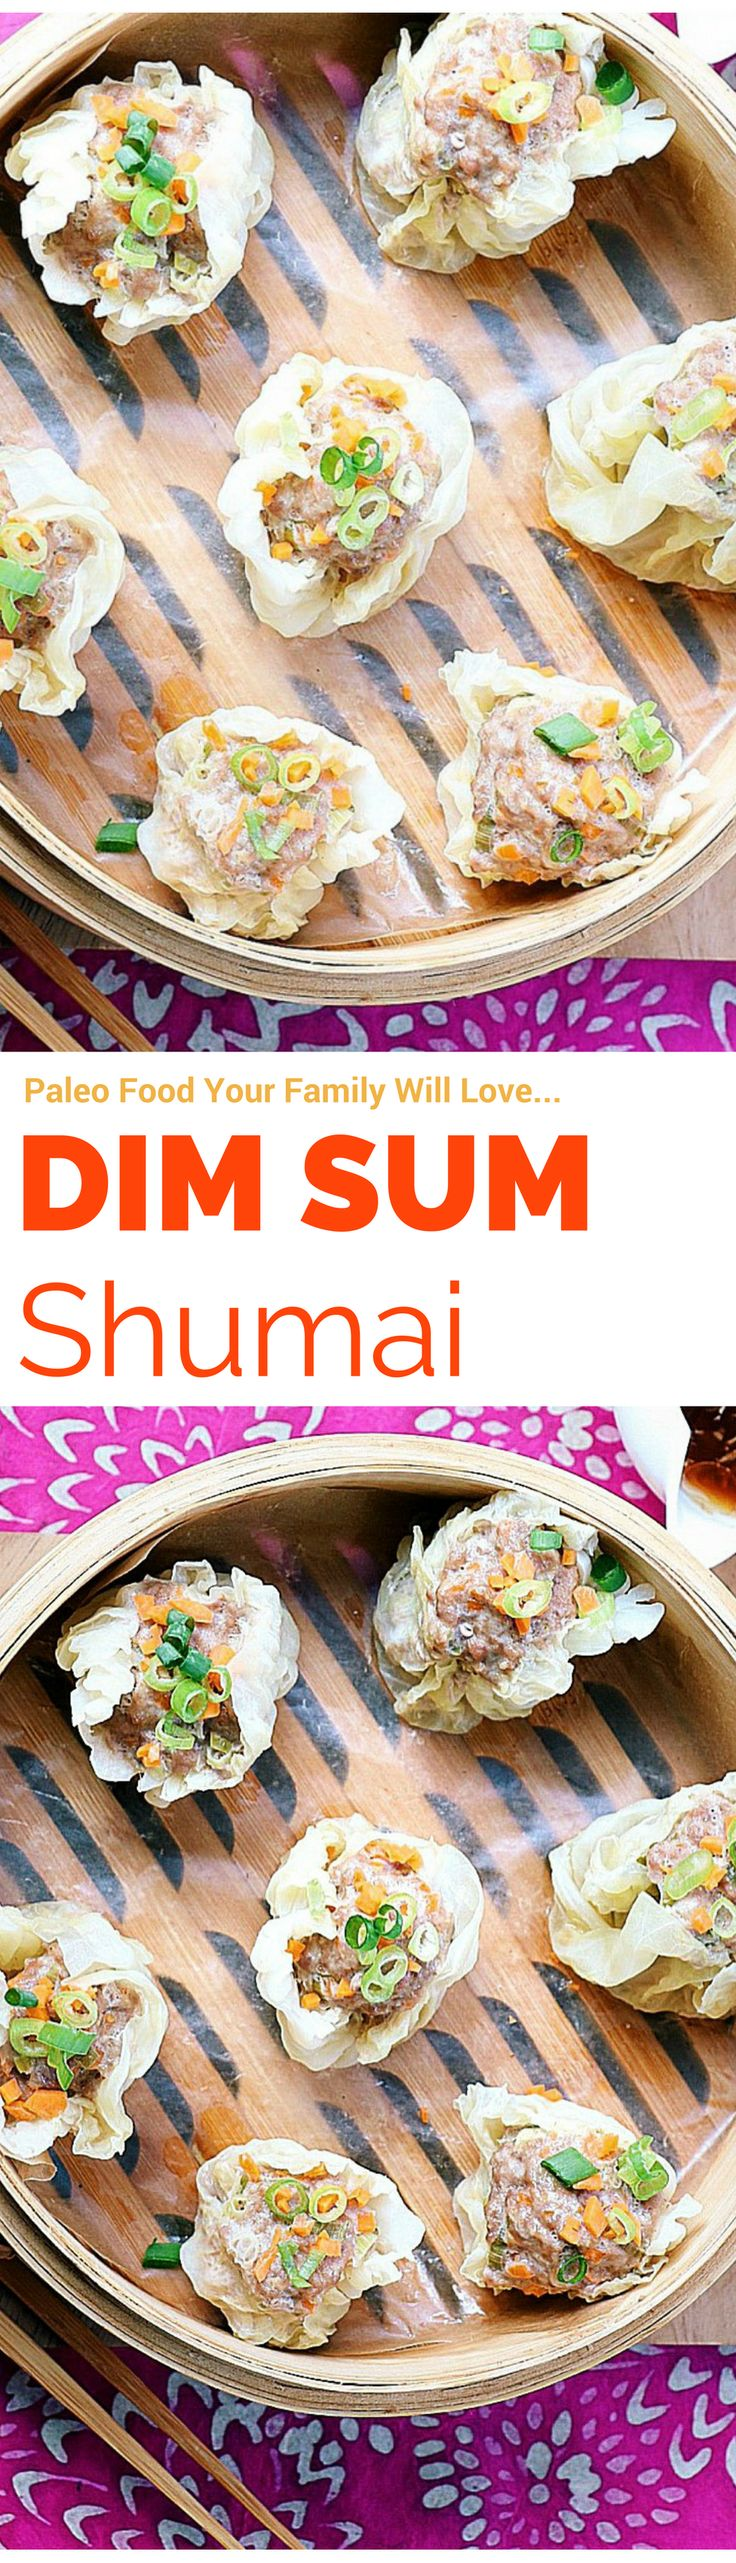 Paleo Dim Sum - Shumai ! These paleo dumplings are low carb and free of gluten, wheat and soy. They even come with Paleo Asian dumpling dipping sauce. My family absolutely loves this recipe !